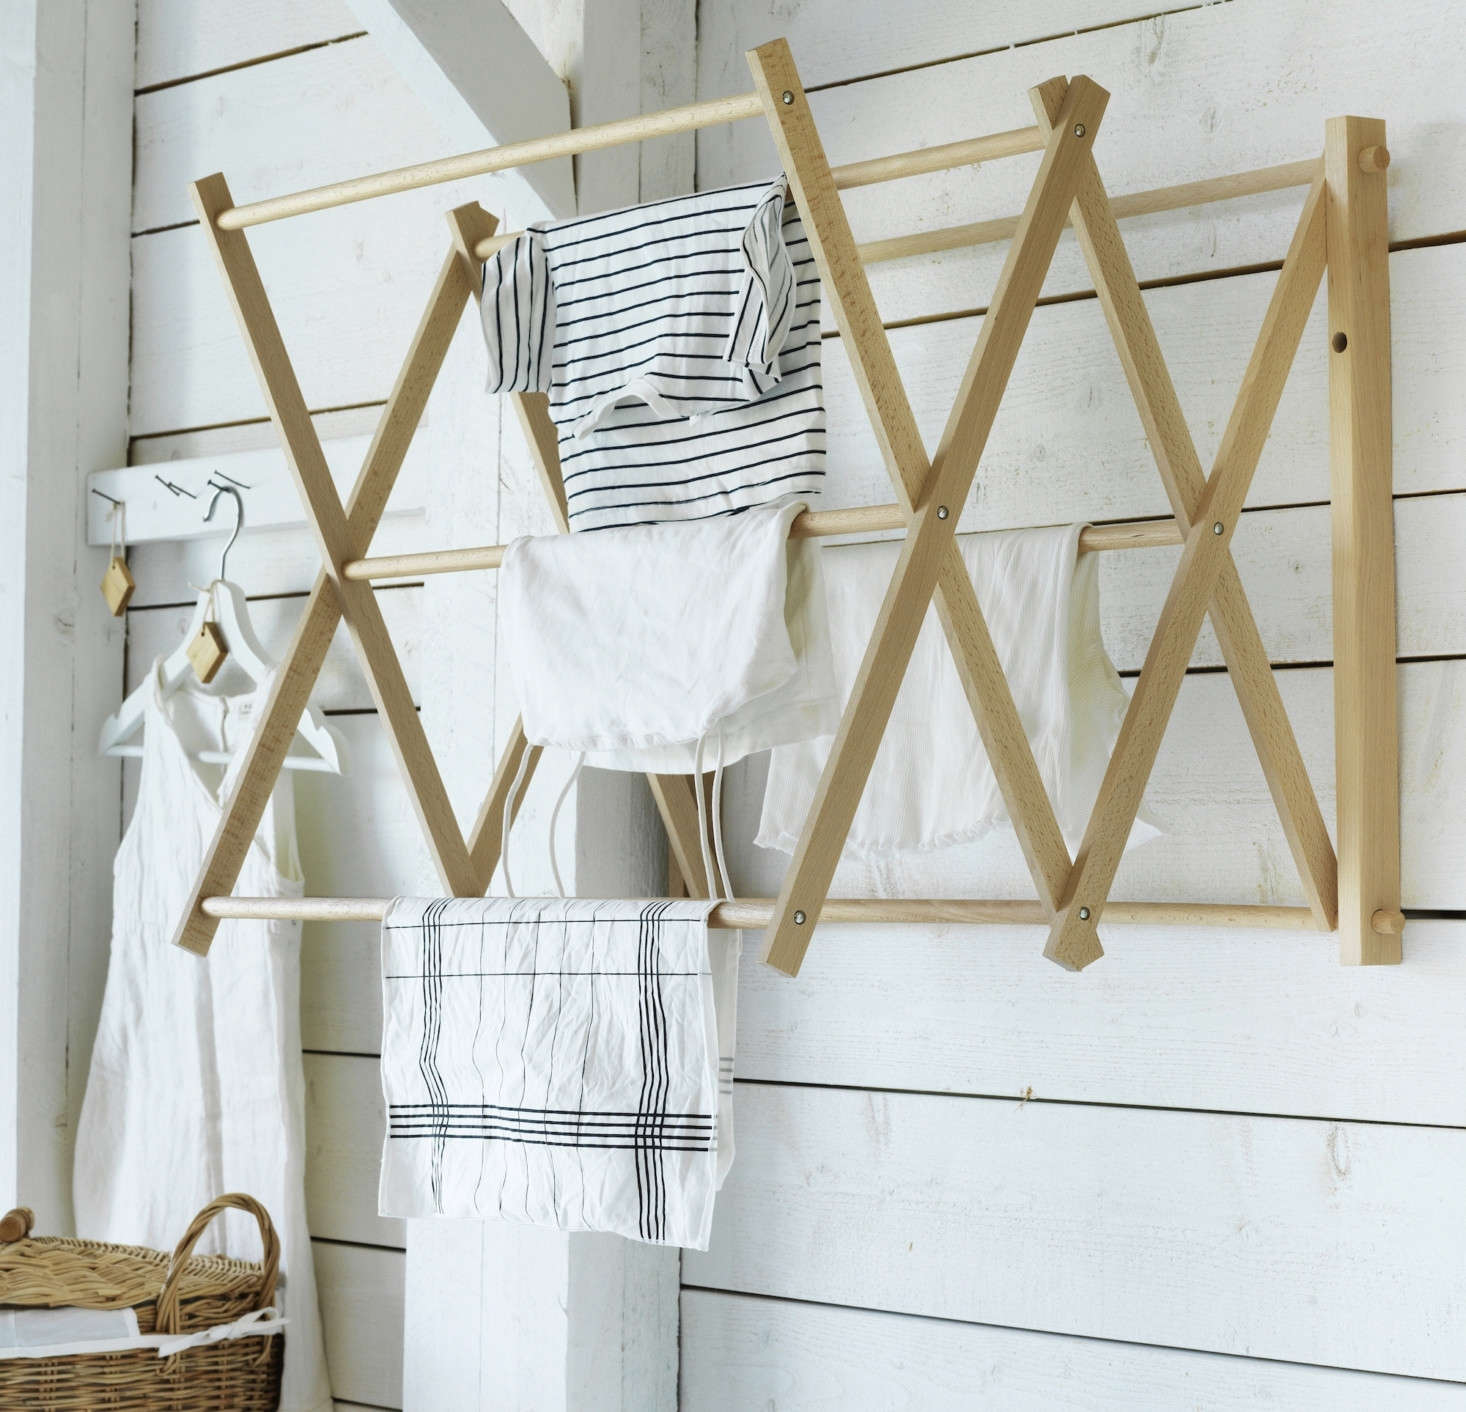 The Wall Drying Rack is $34.99 and the Laundry Basket is $39.99. Hanging on the bottom rung is a Cleaning Cloth from the collection ($5.99 for